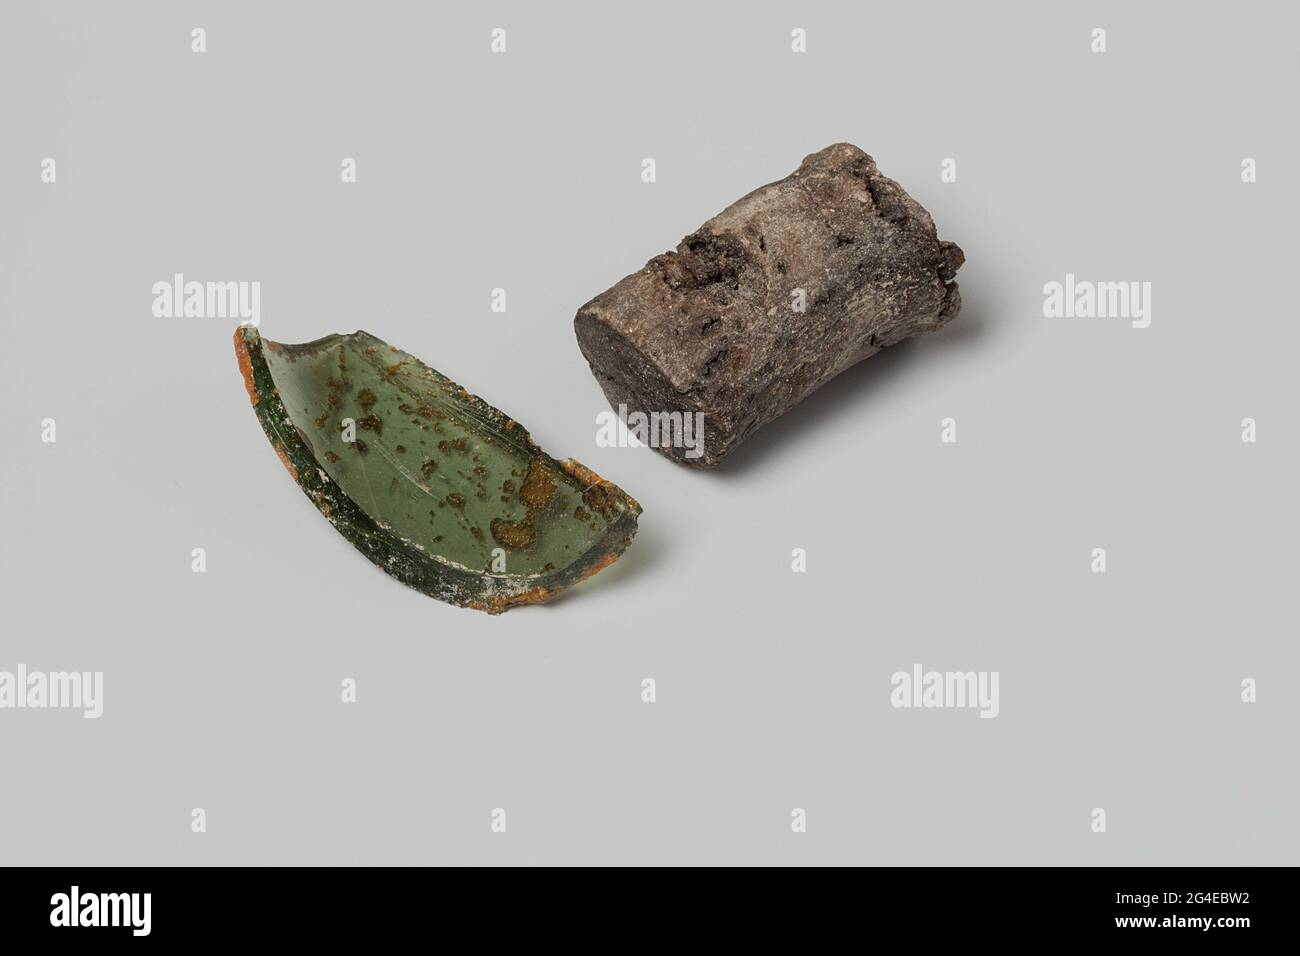 Glass shard and cork from a wine bottle from the wreck of the East Indies Flying Heart. The brown cork and the green glass fragment ever part of a wine bottle. Stock Photo